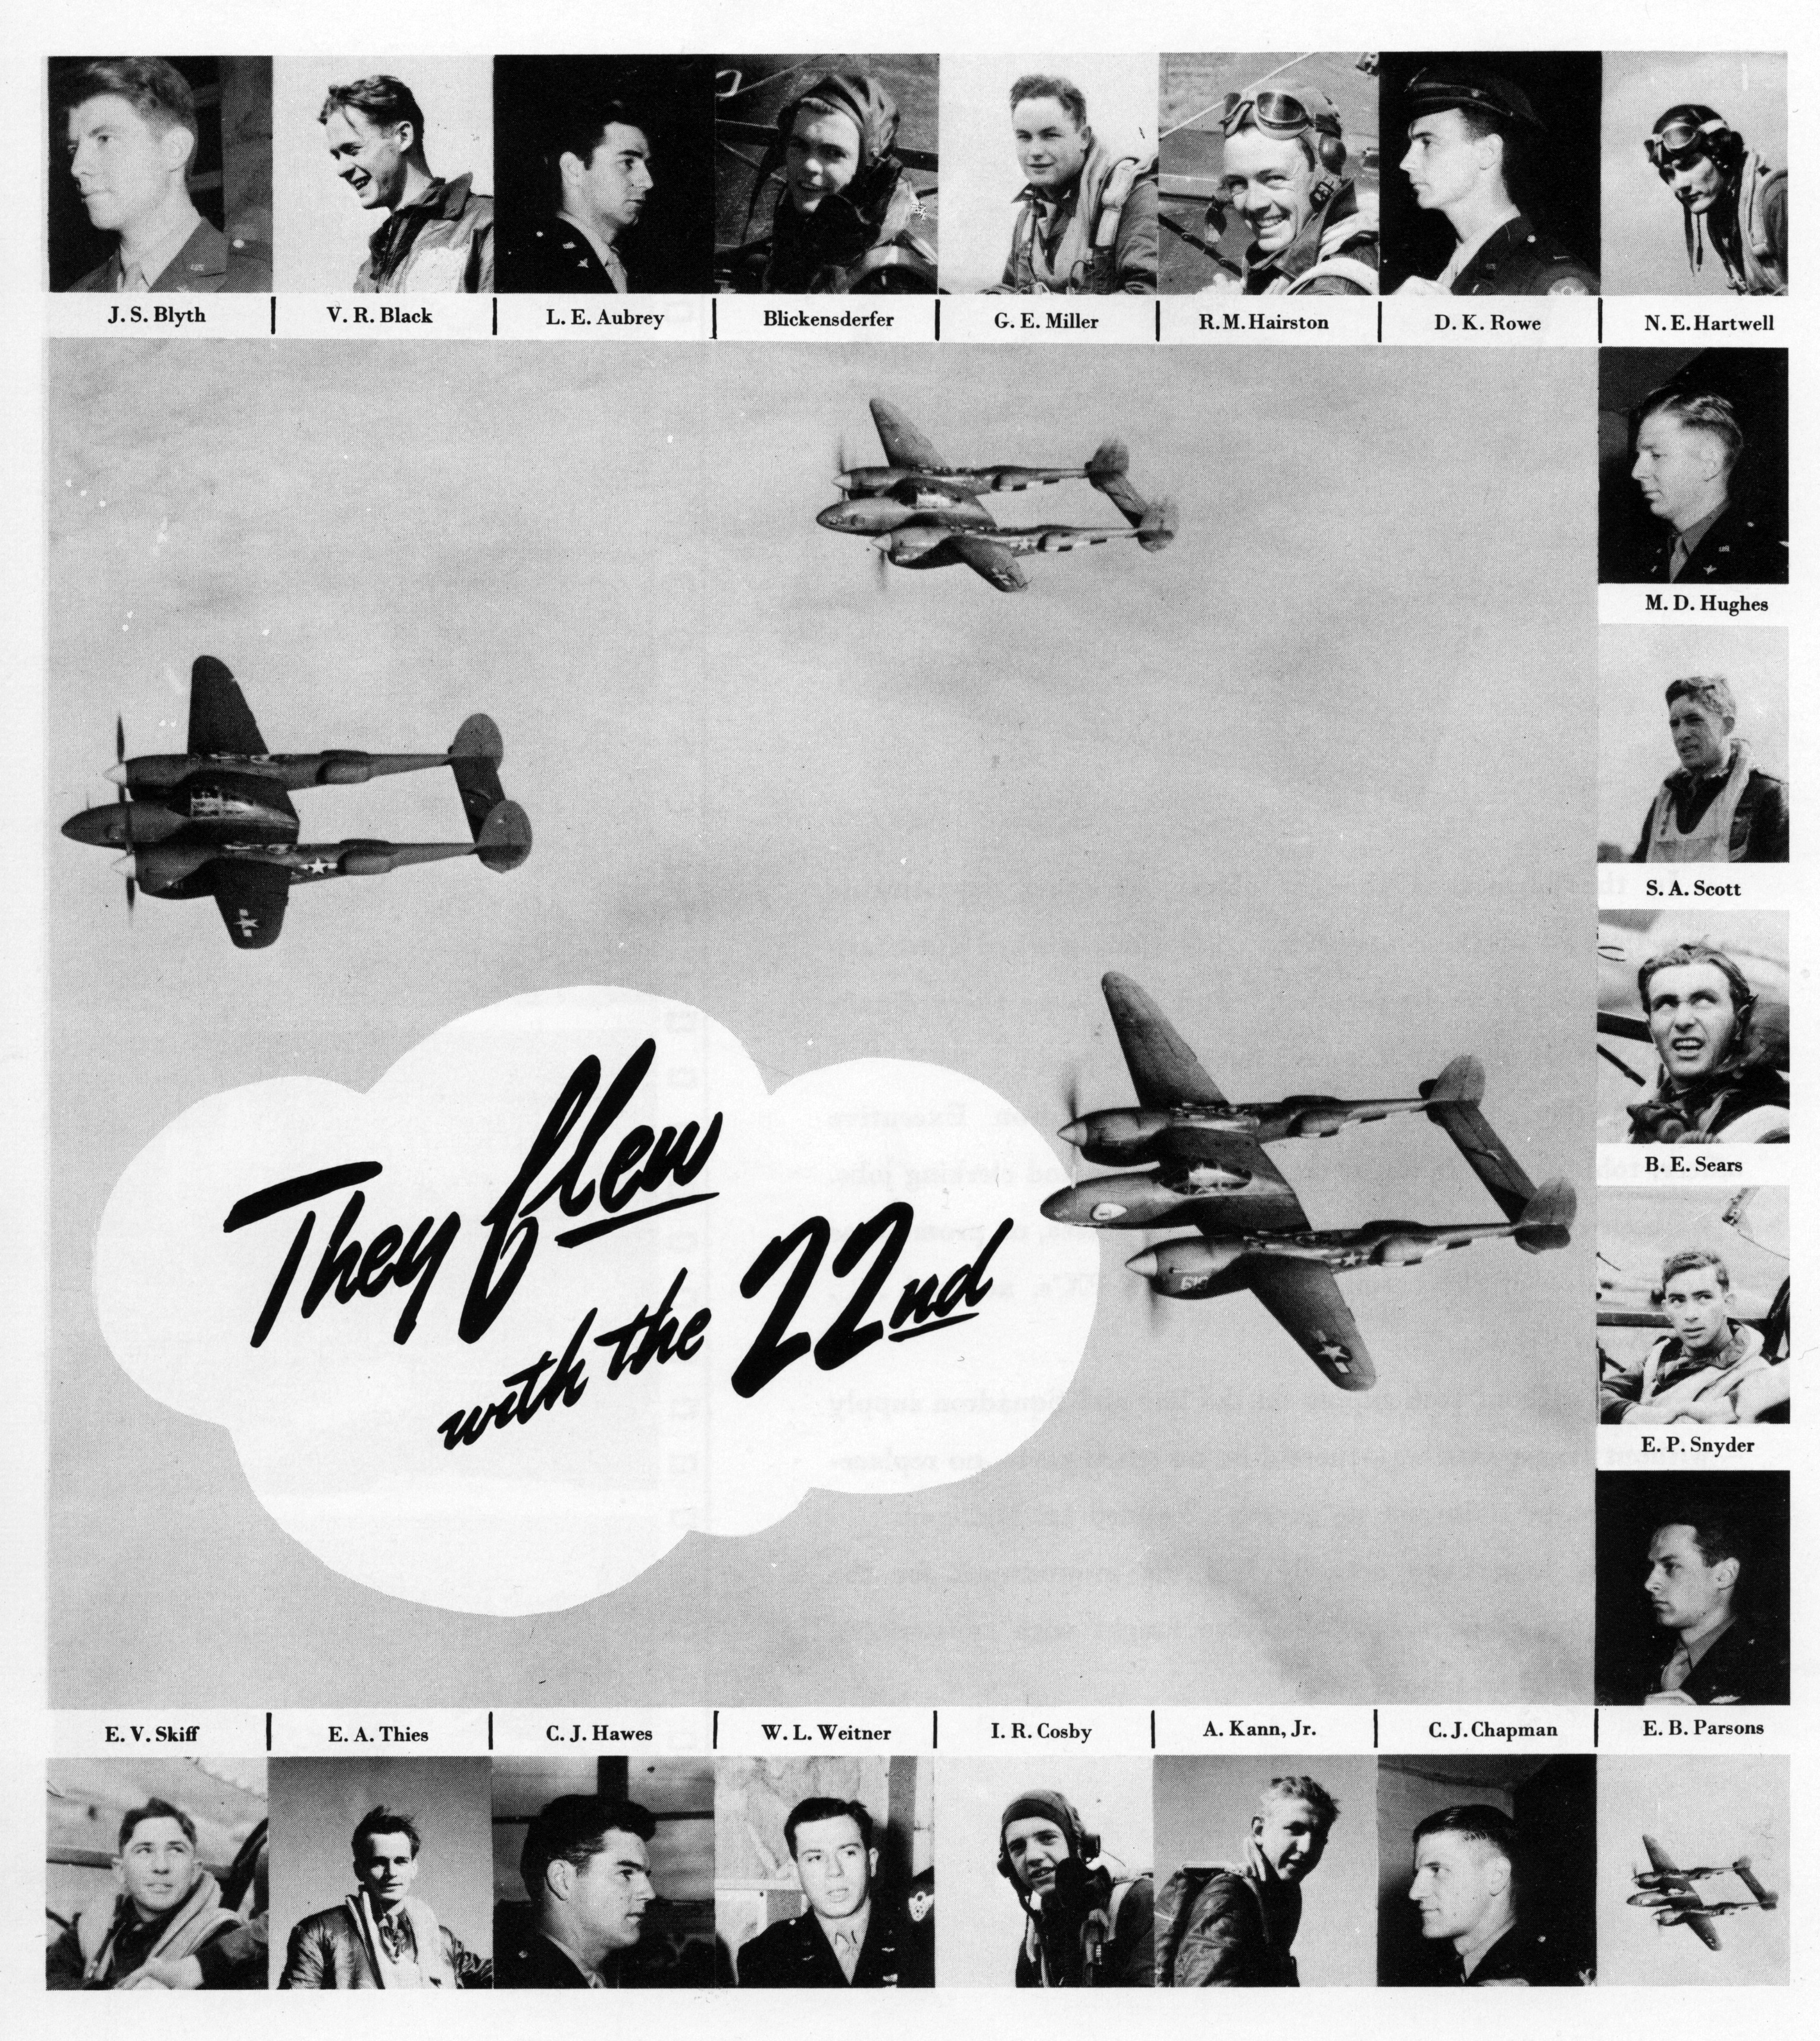 Aircrew 7th Photo Group 22nd Fighter Squadron Pilots Mount Farm Oxfordshire UK 1944 02